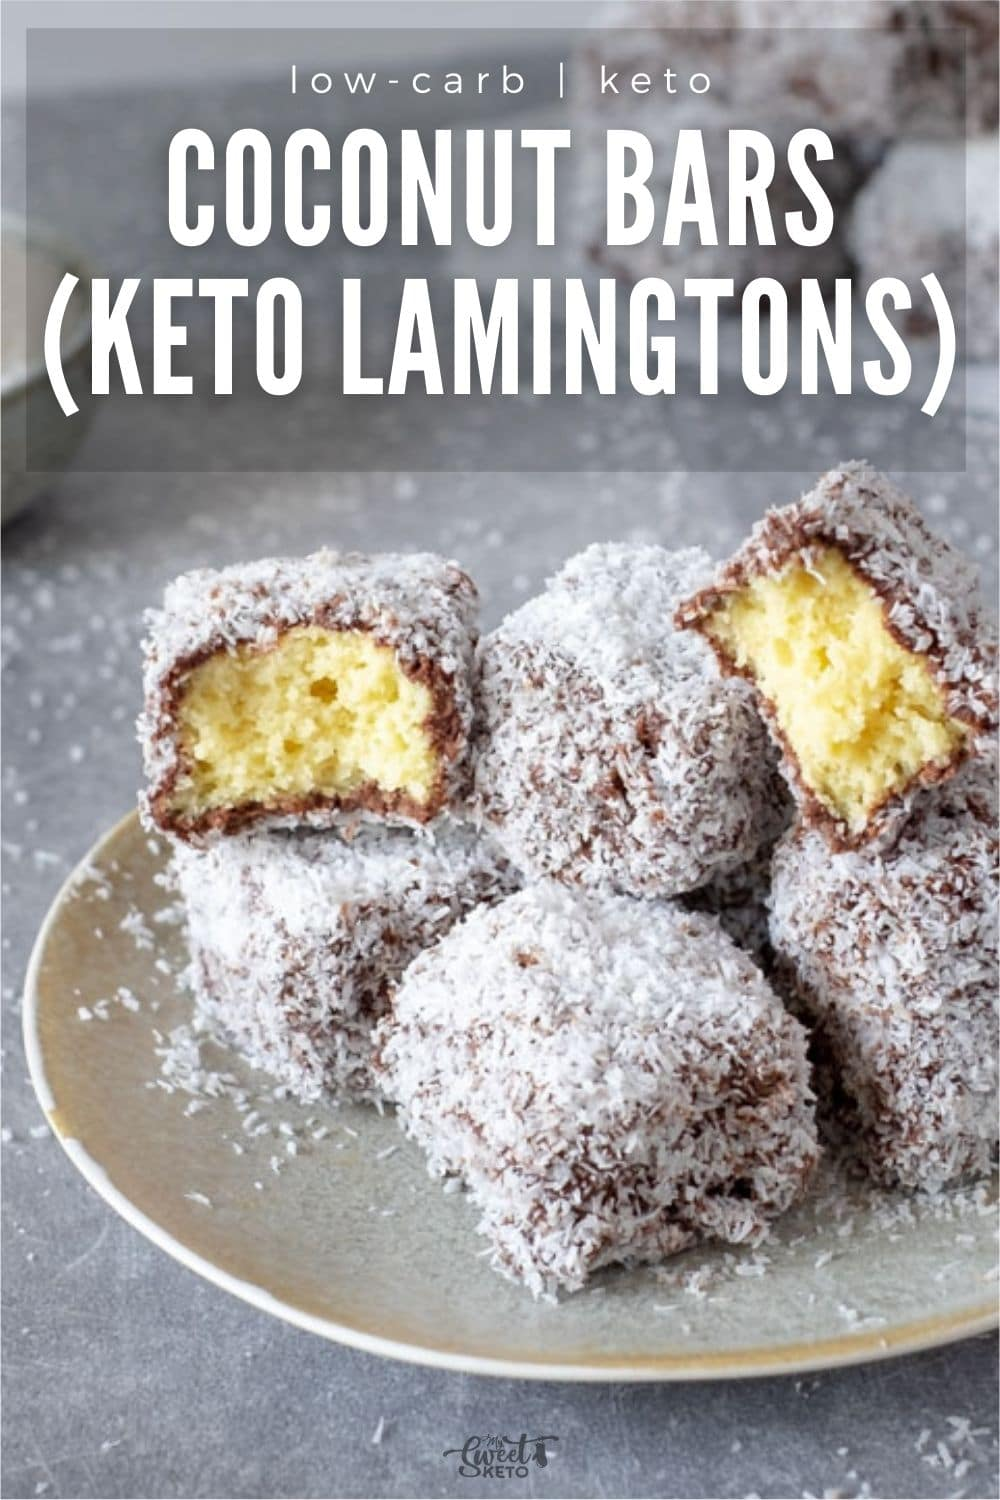 Have you ever had those spongy squares covered in a soft layer of chocolate and shredded coconut? Here is your chance to try Keto Lamingtons! #ketolamingtons